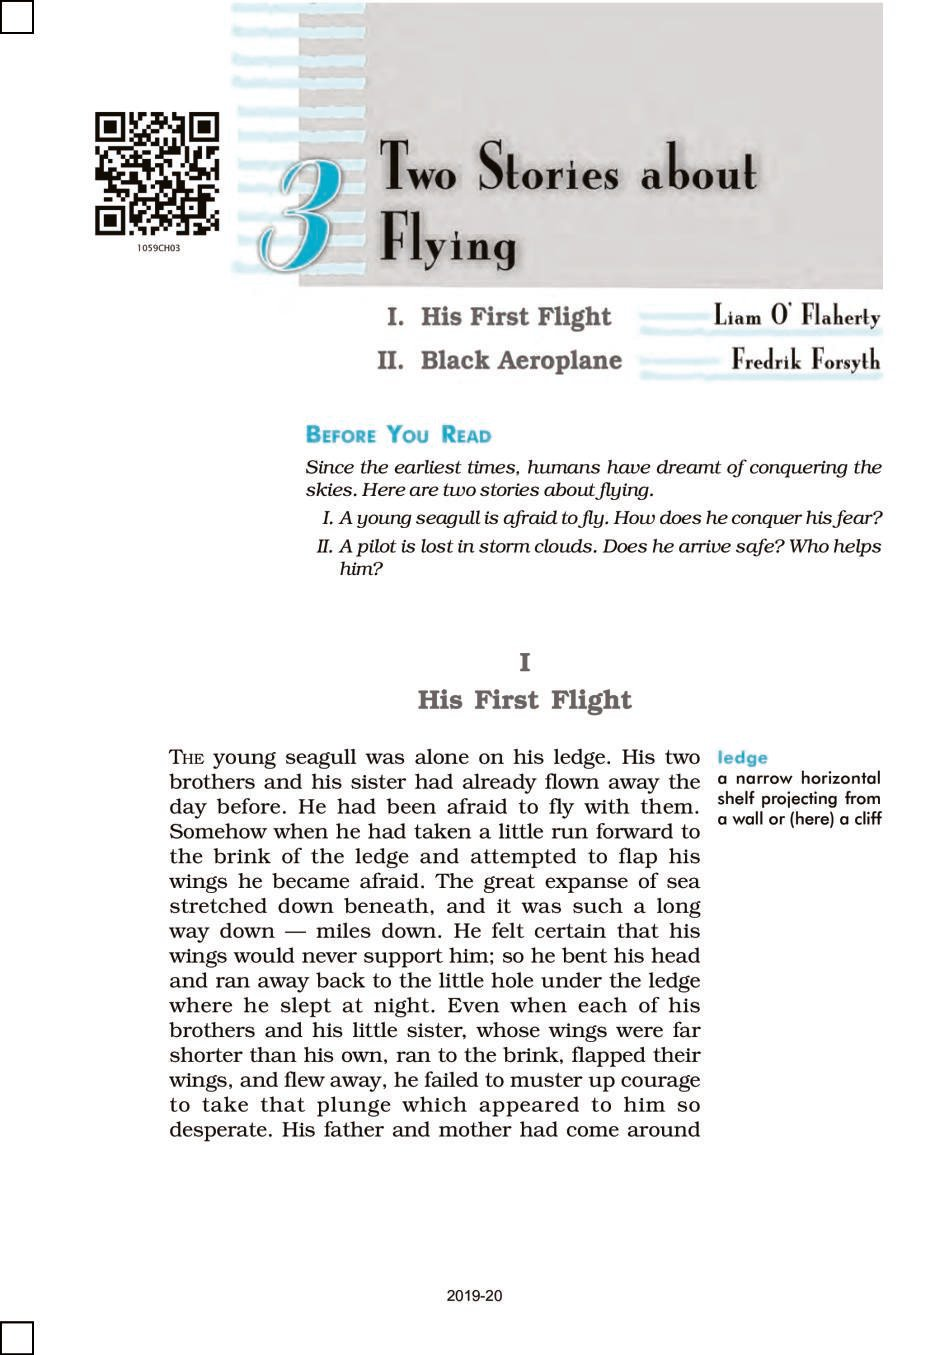 NCERT Book Class 10 English (First Flight) Chapter 3 Two Stories about Flying; His First Flight; Black Aeroplane How to Tell Wild Animals, The Ball Poem - Page 1